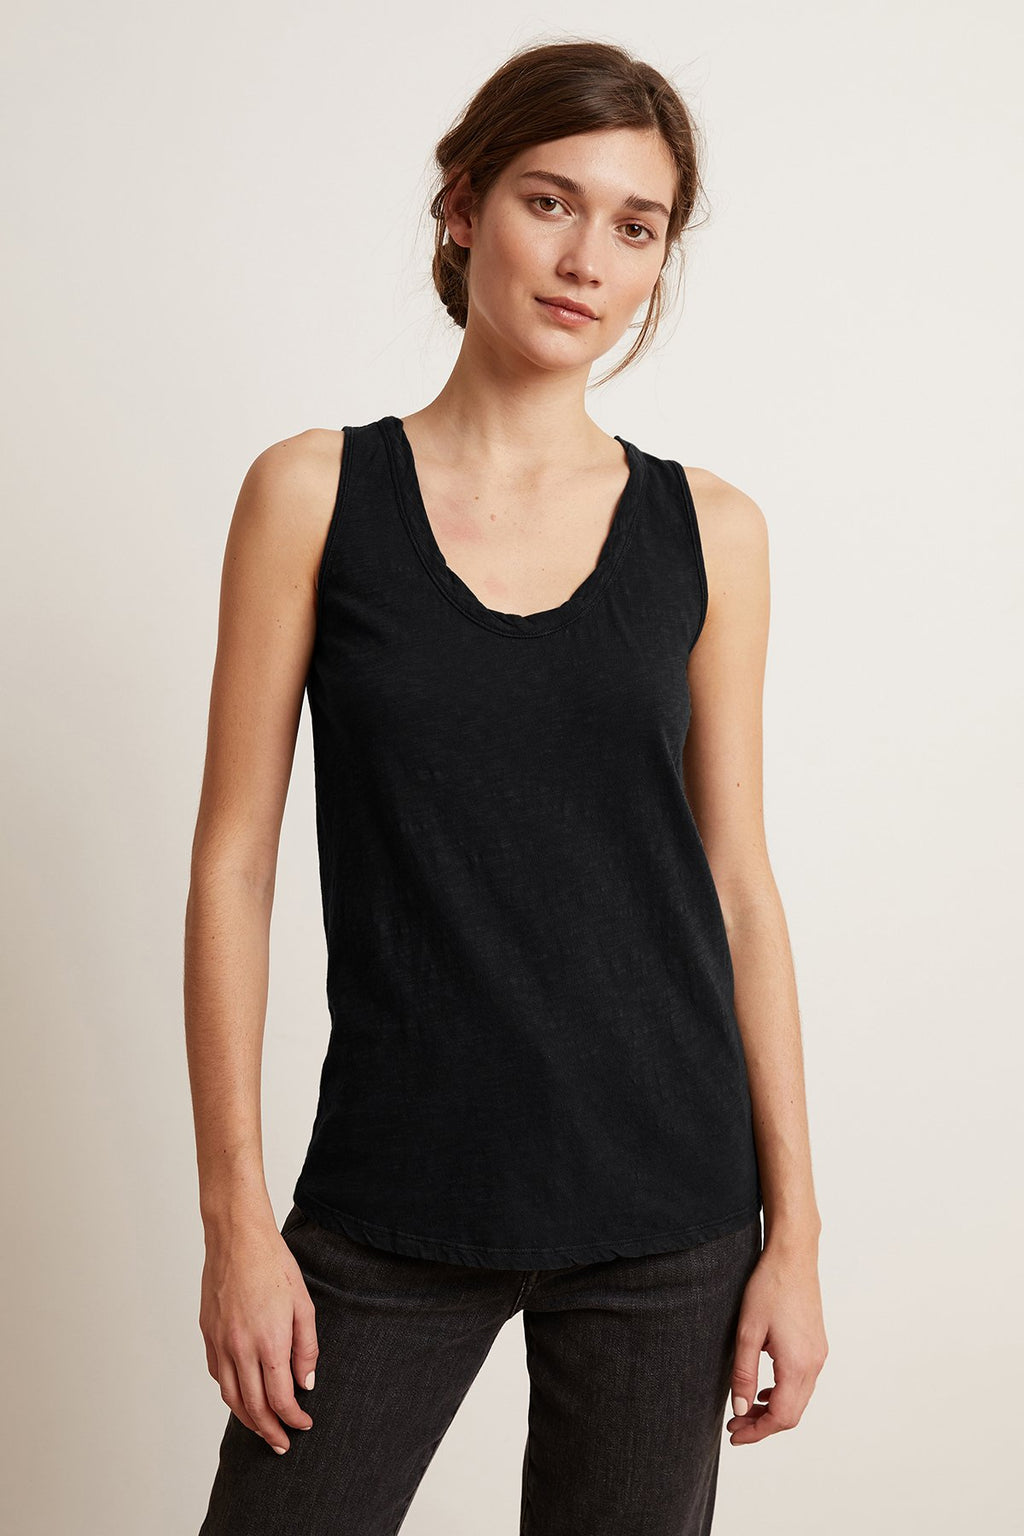 Velvet Joy Original Slub Scoop Neck Tank in Black